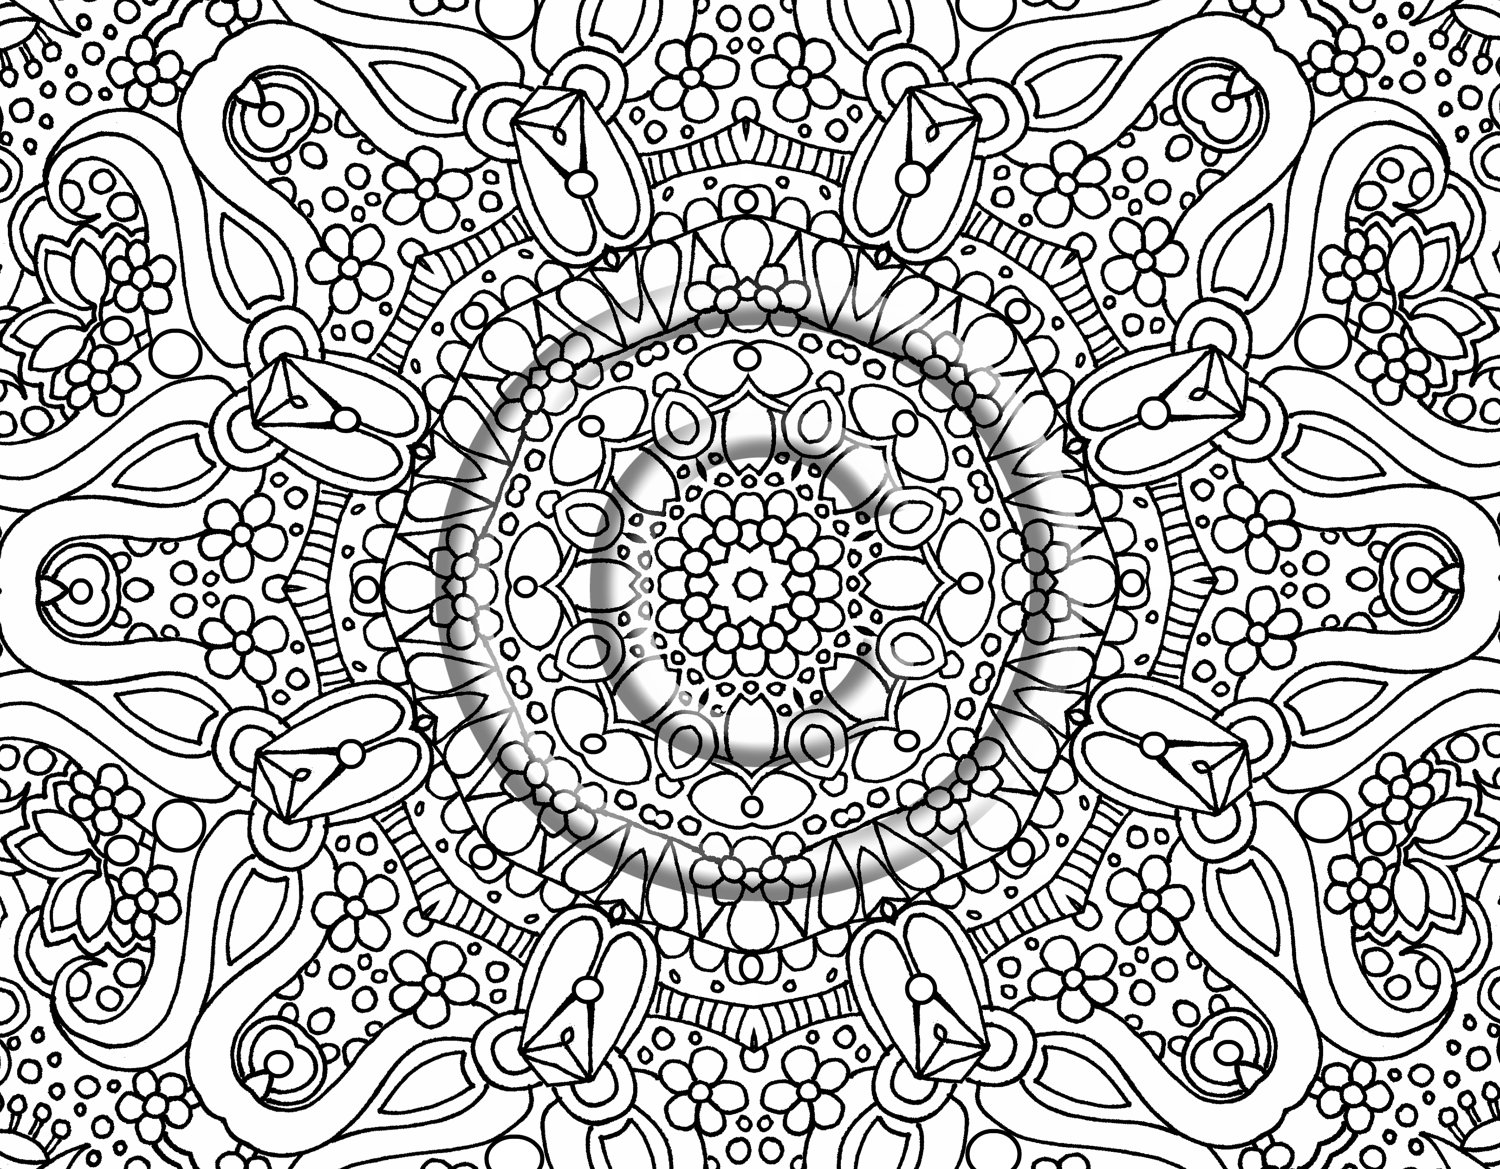 abstract coloring pages for kids abstract coloring pages 3 coloring pages to print abstract for coloring kids pages